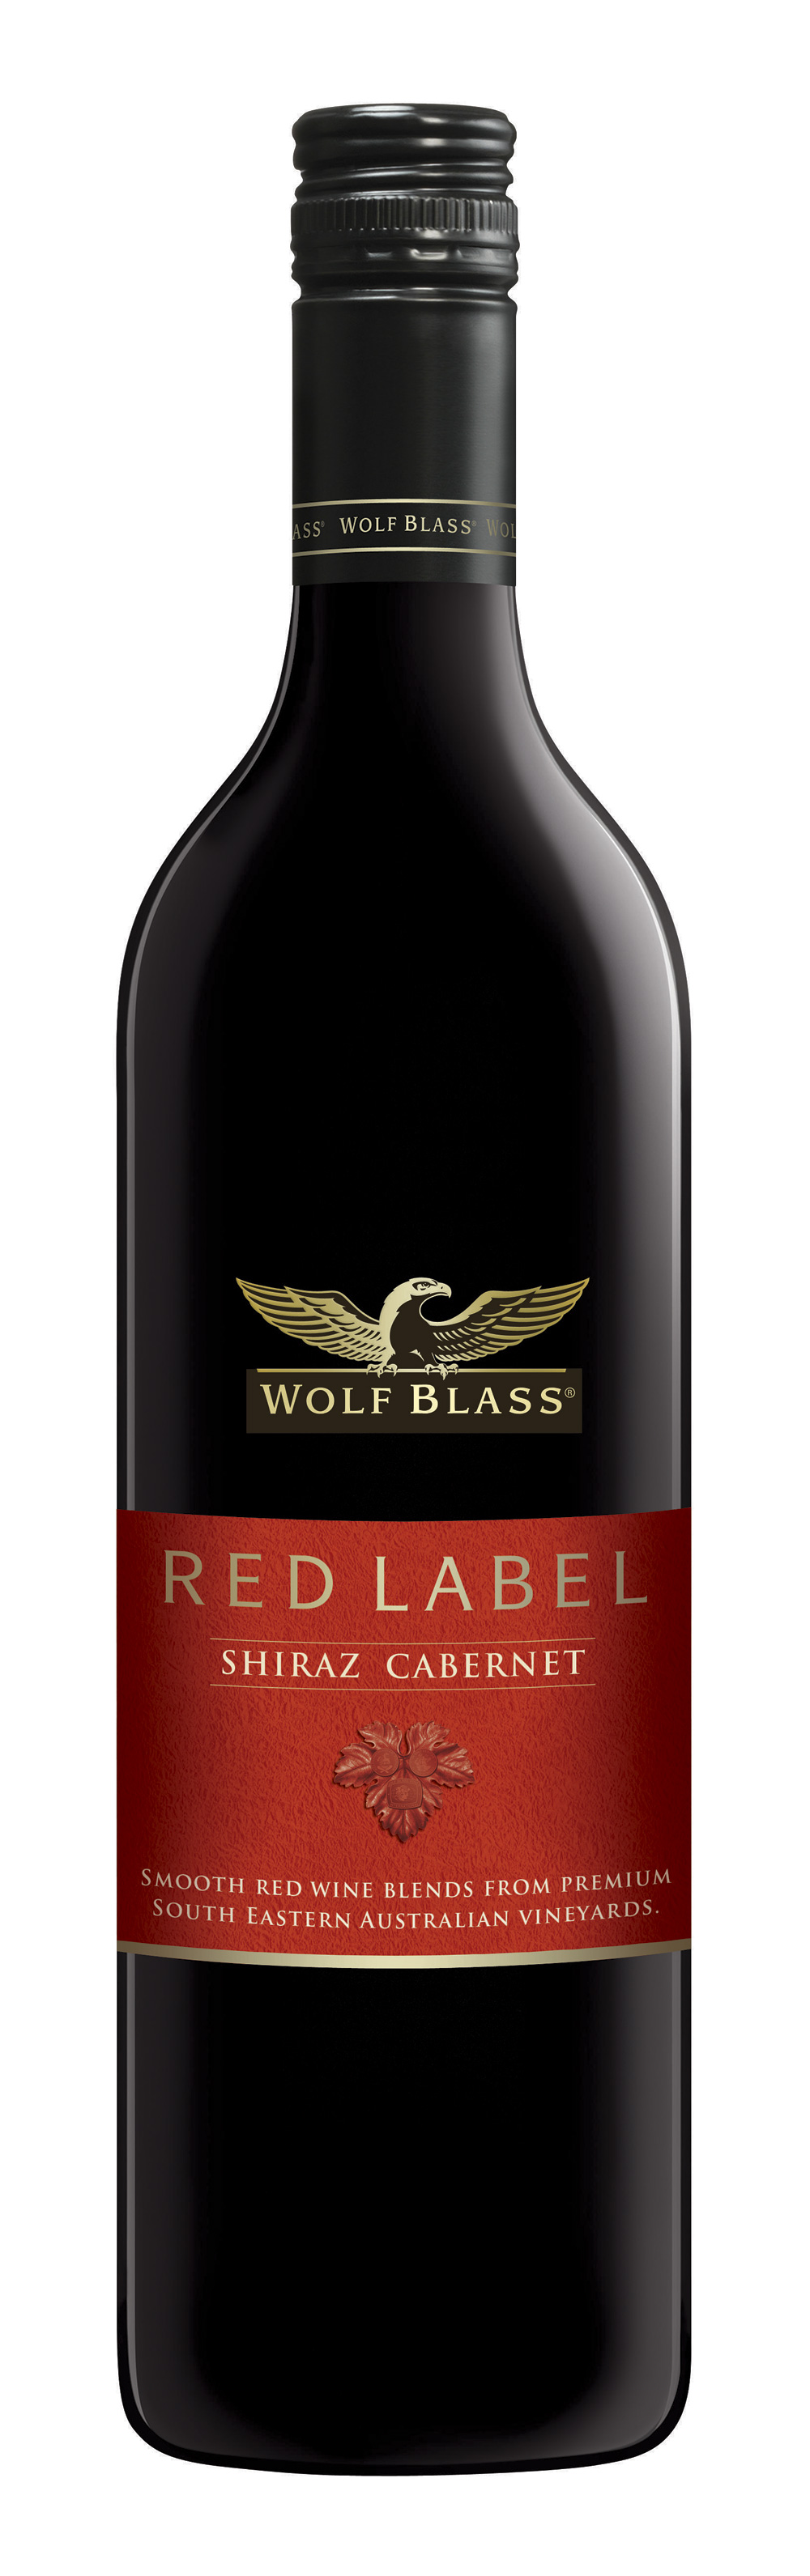 It S Red And Hearty For Wolf Blass Soft White For Muller Red Blend Wine Red Wine Wine Design